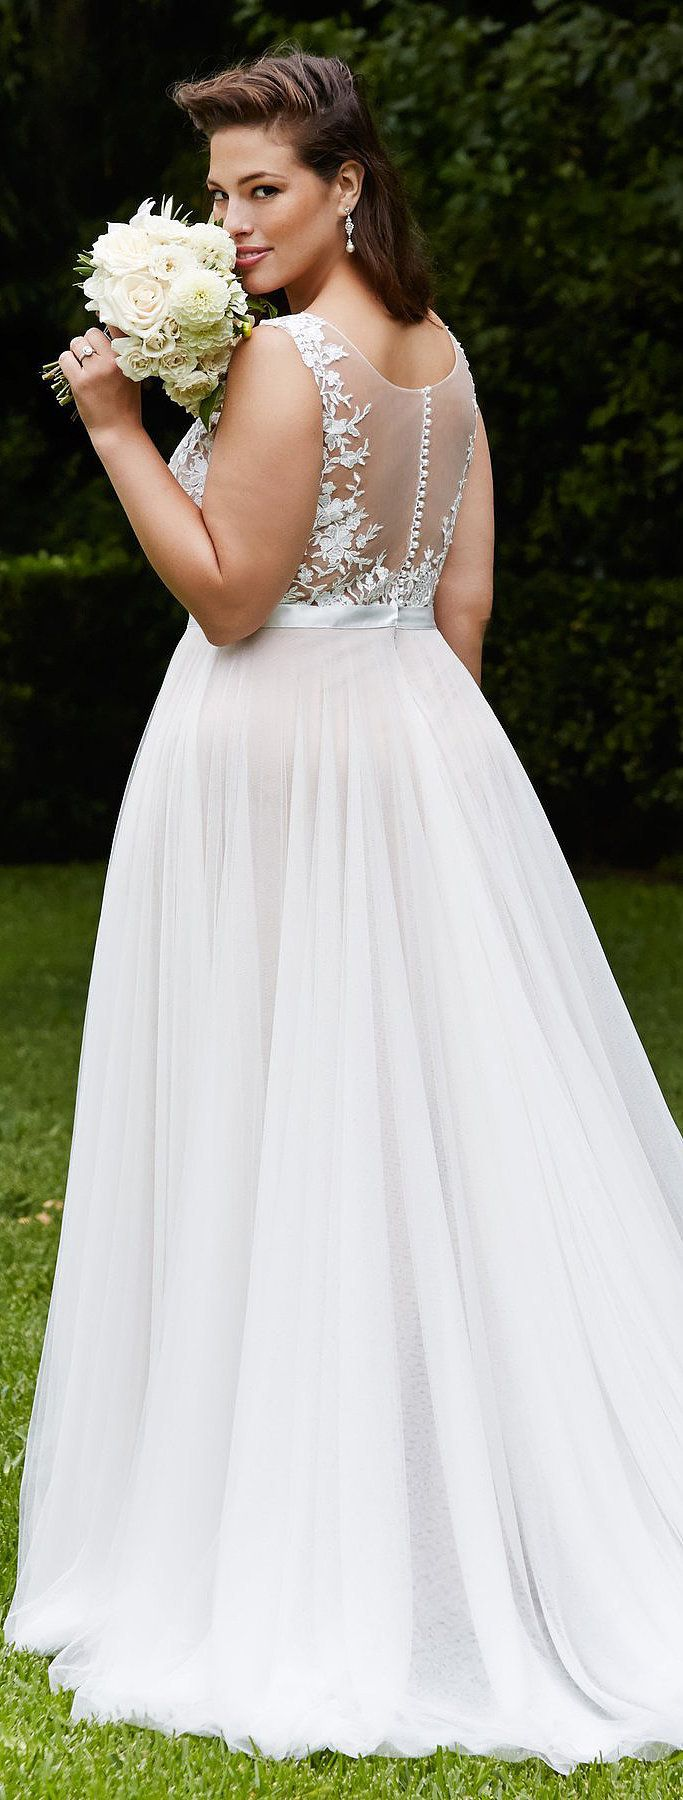 20 Gorgeous Wedding Gowns For Curvy Girls